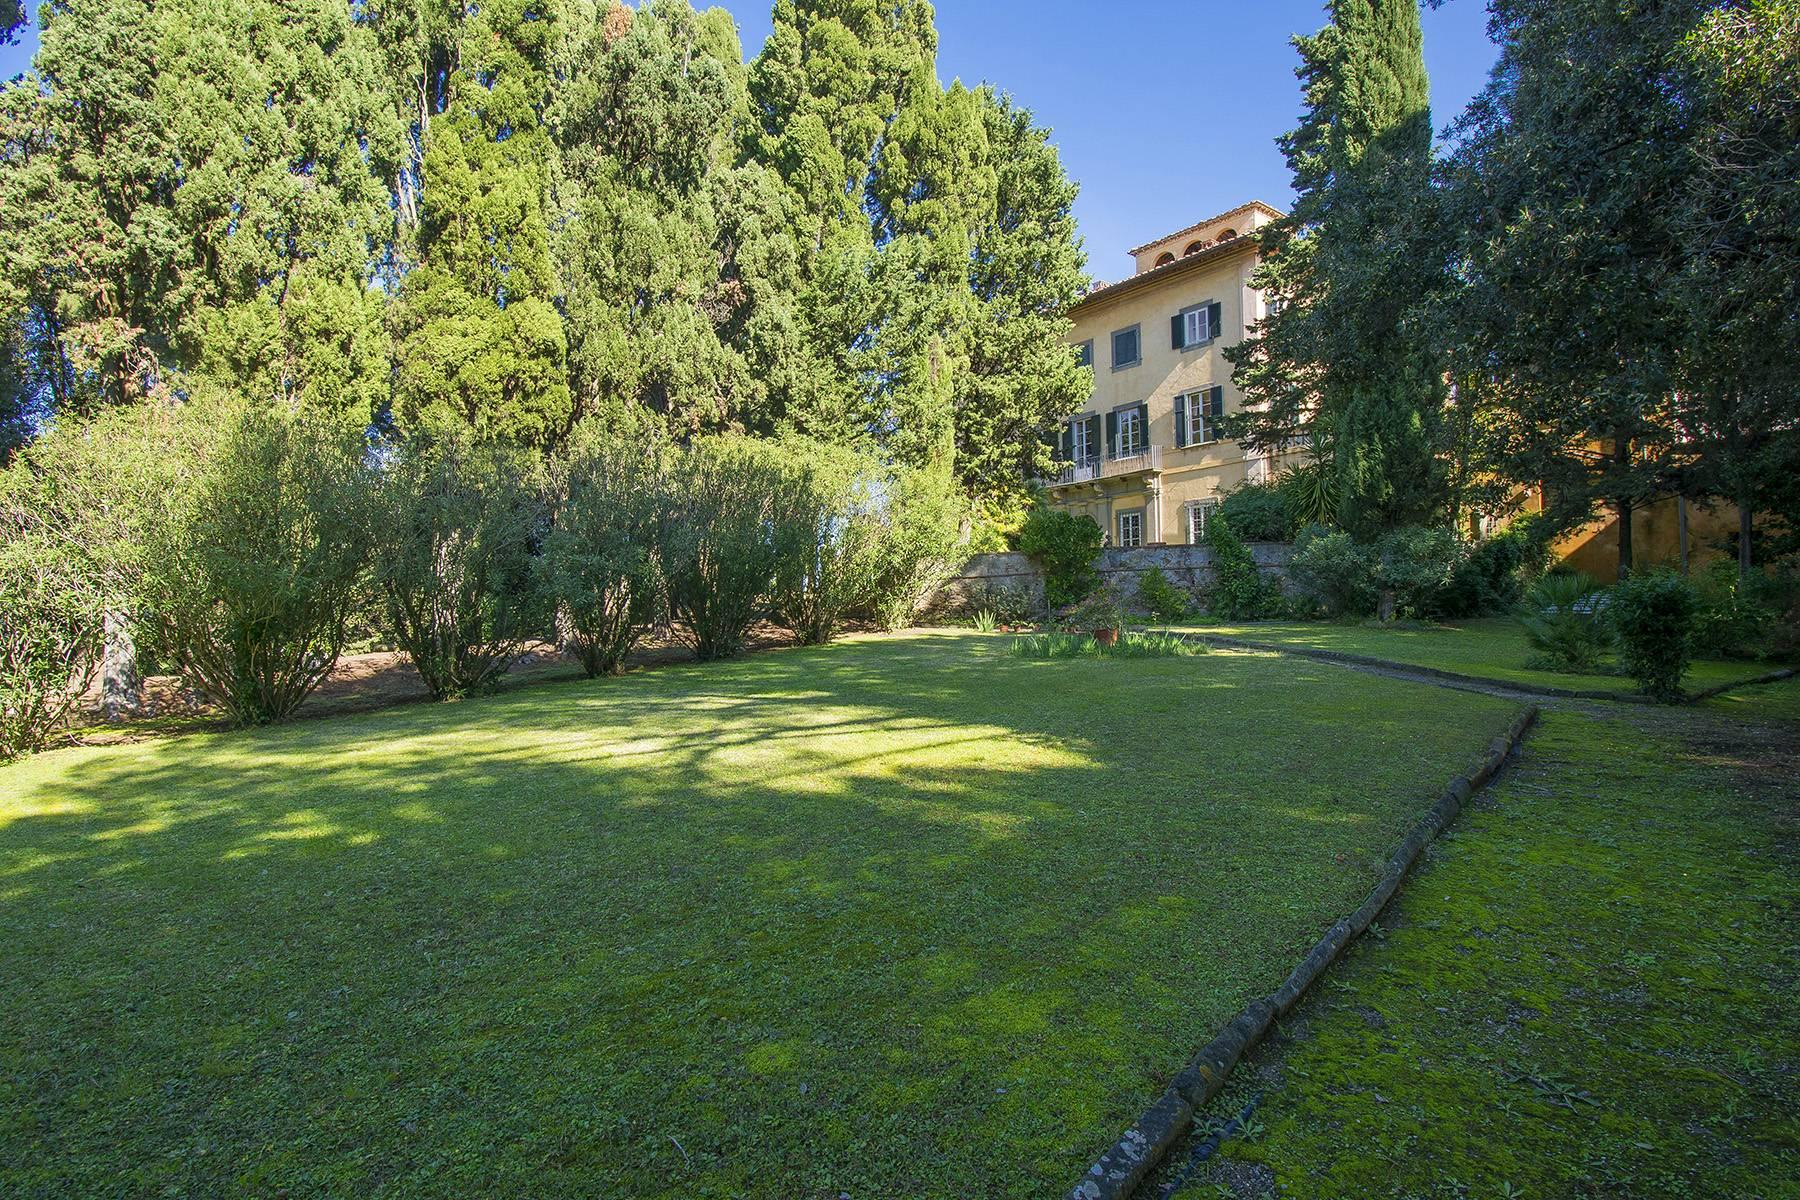 Charming Medicean Villa on the Tuscan hills - 31